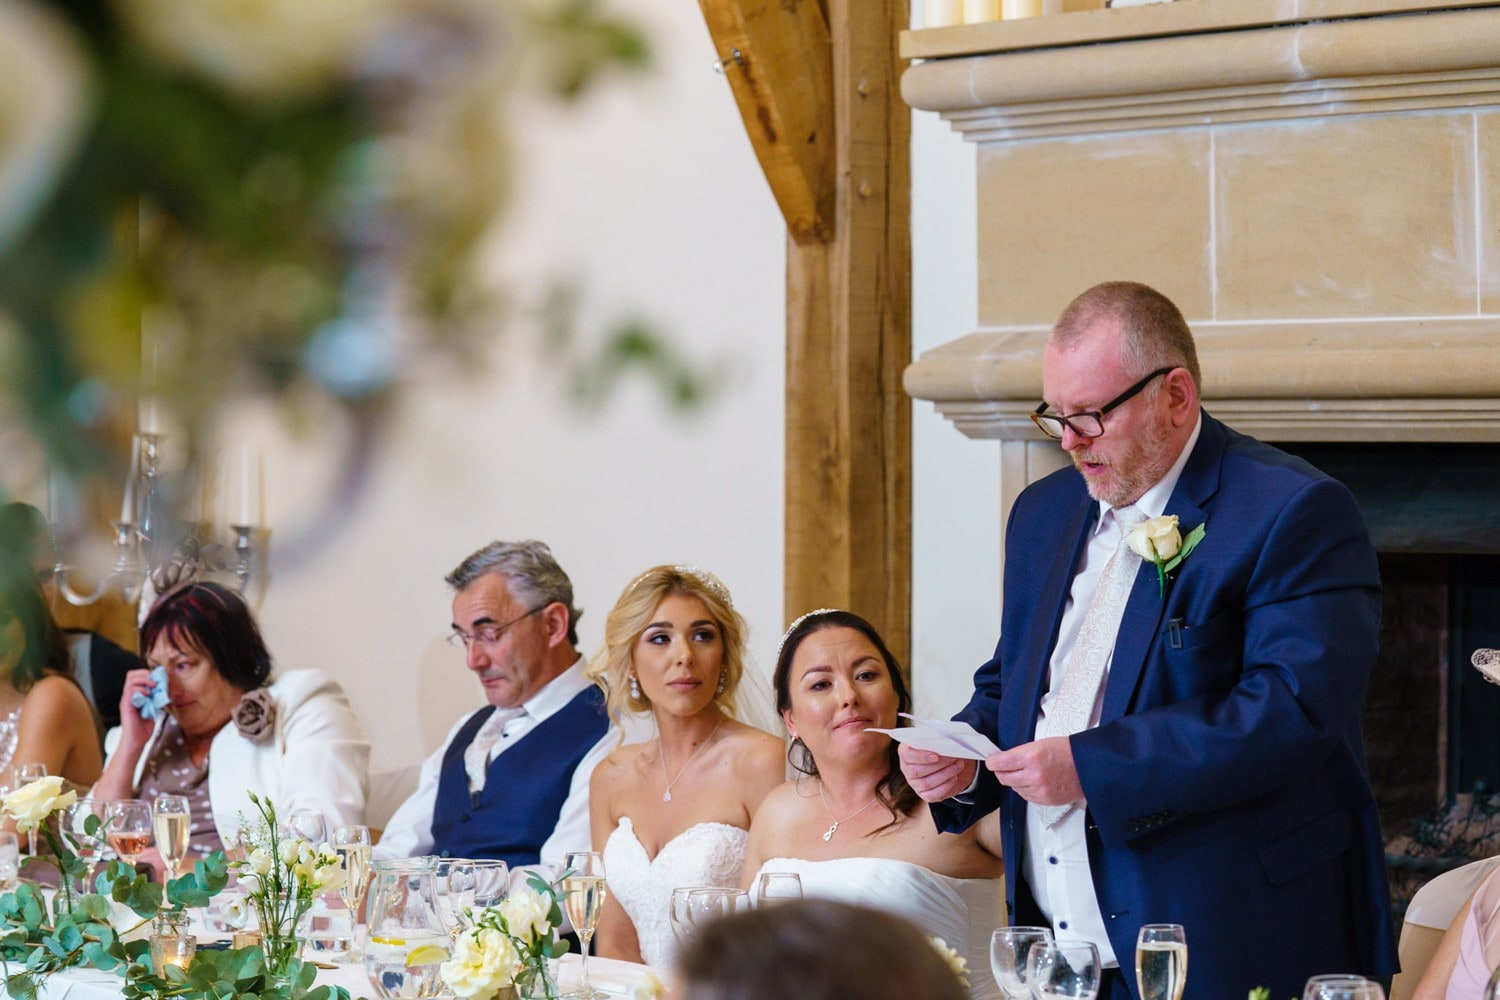 Father of the bride speech during wedding breakfast at Swancar Farm in Nottinghamshire